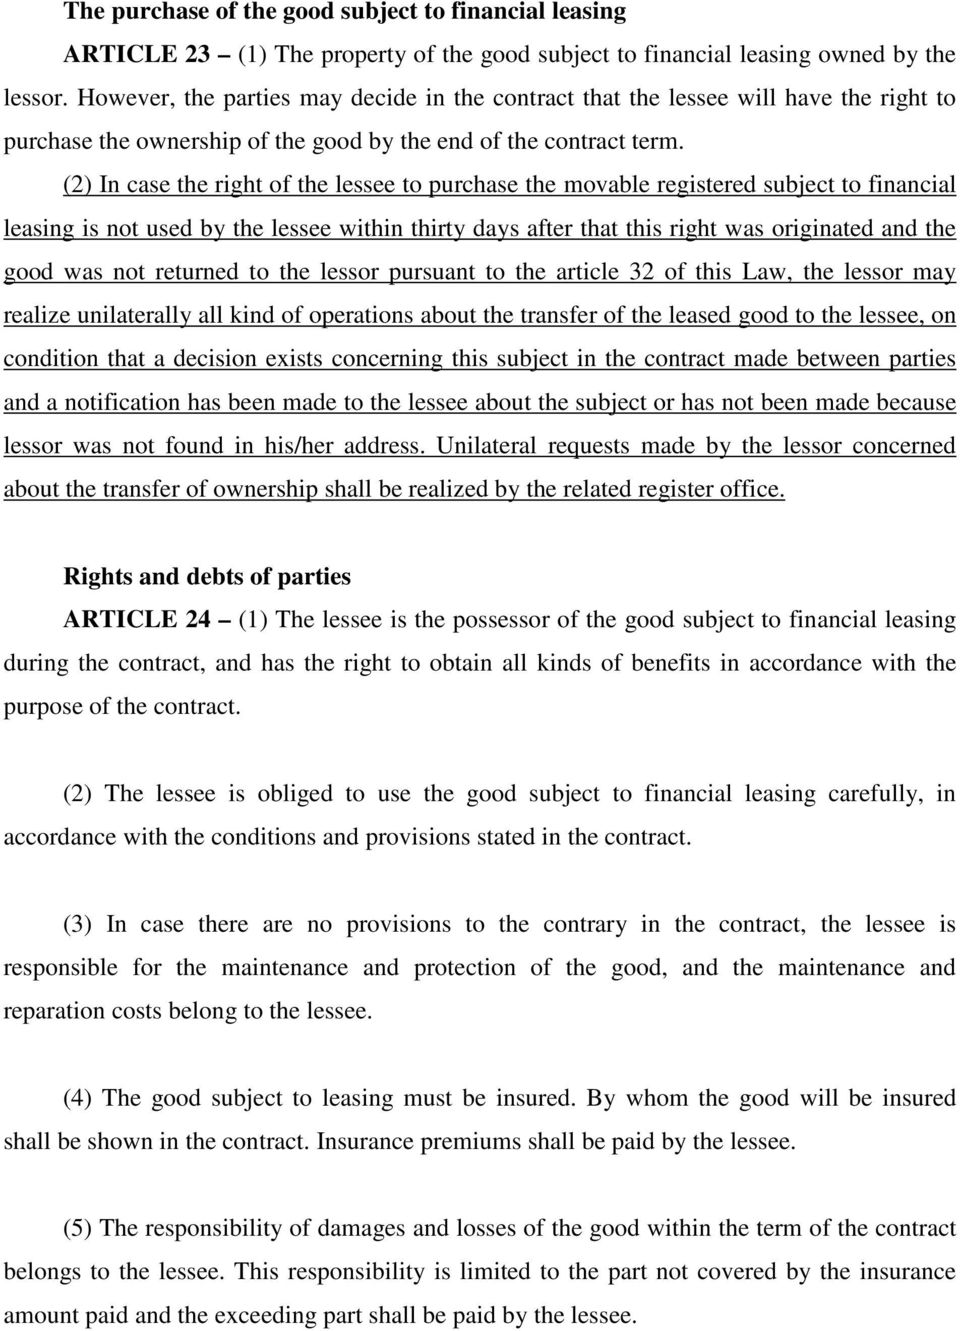 (2) In case the right of the lessee to purchase the movable registered subject to financial leasing is not used by the lessee within thirty days after that this right was originated and the good was